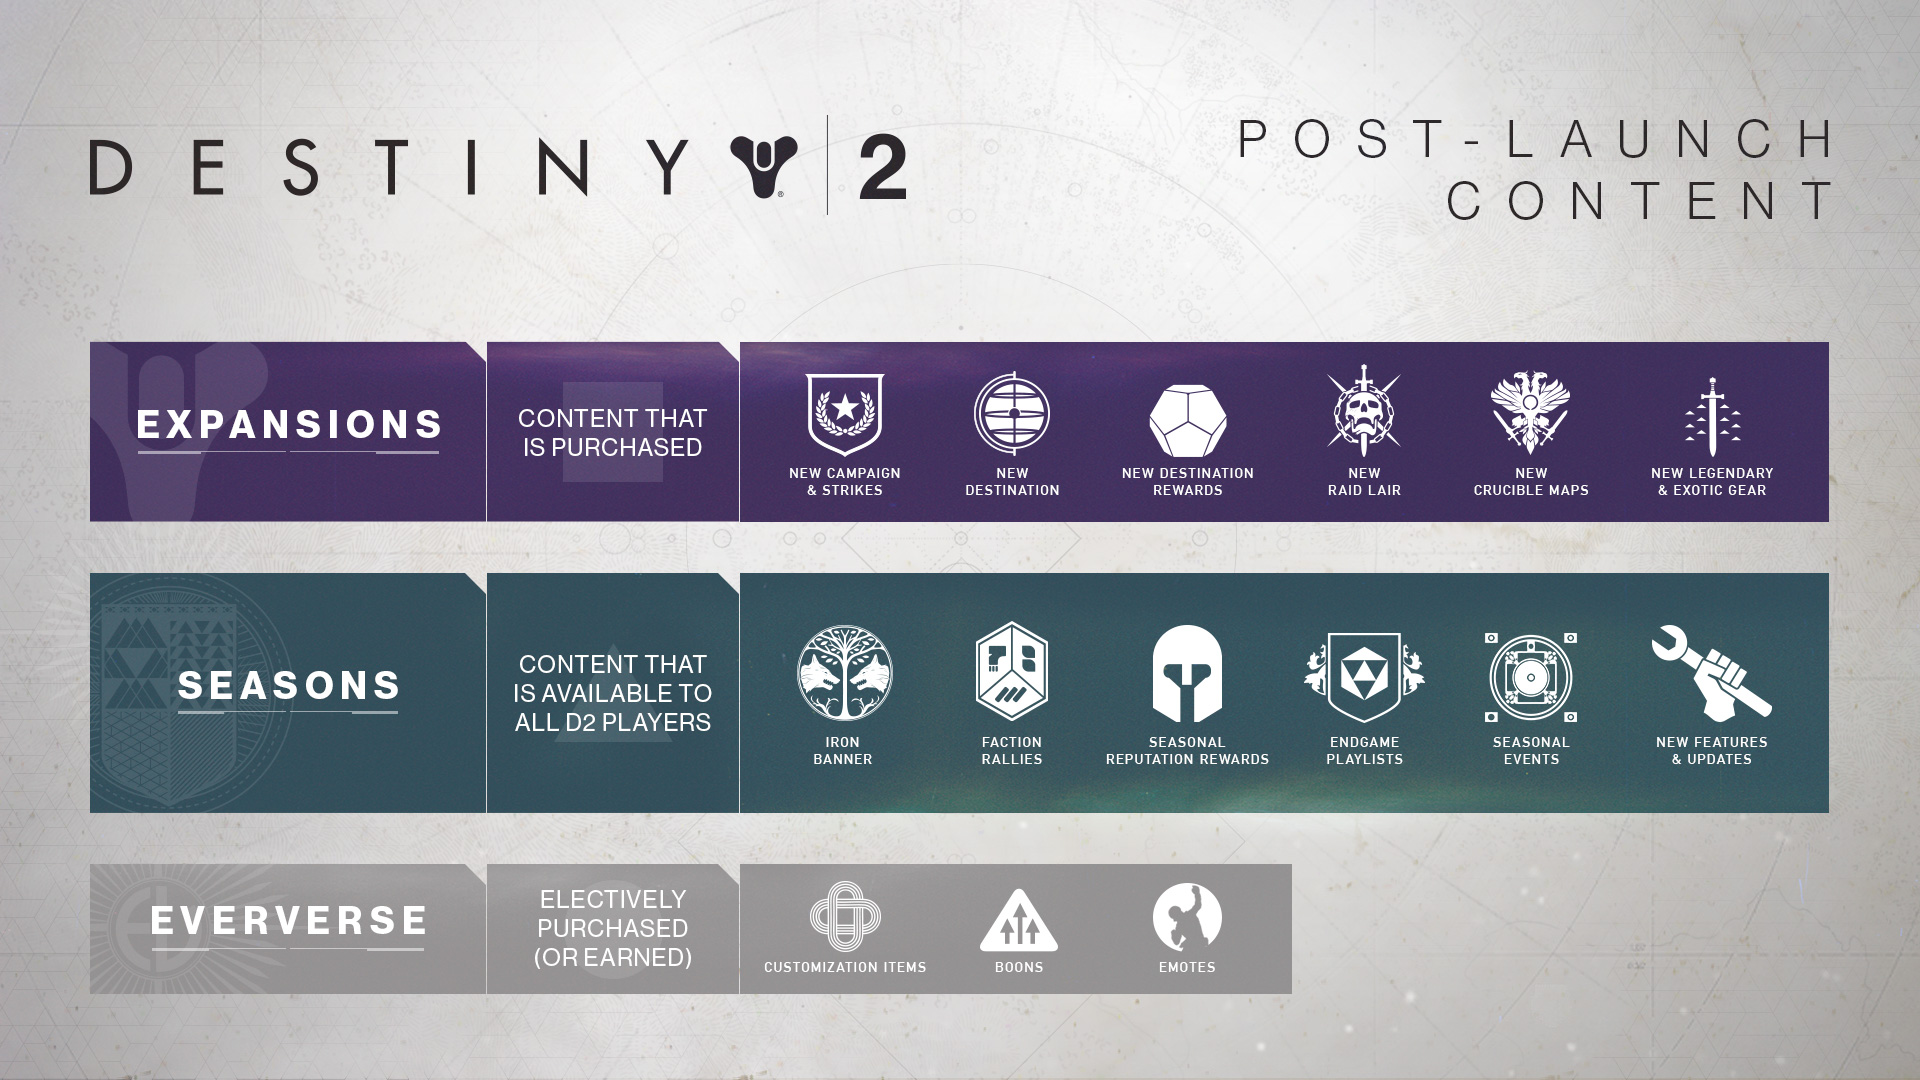 Bungie promises to rebalance Destiny 2's loot boxes, raids